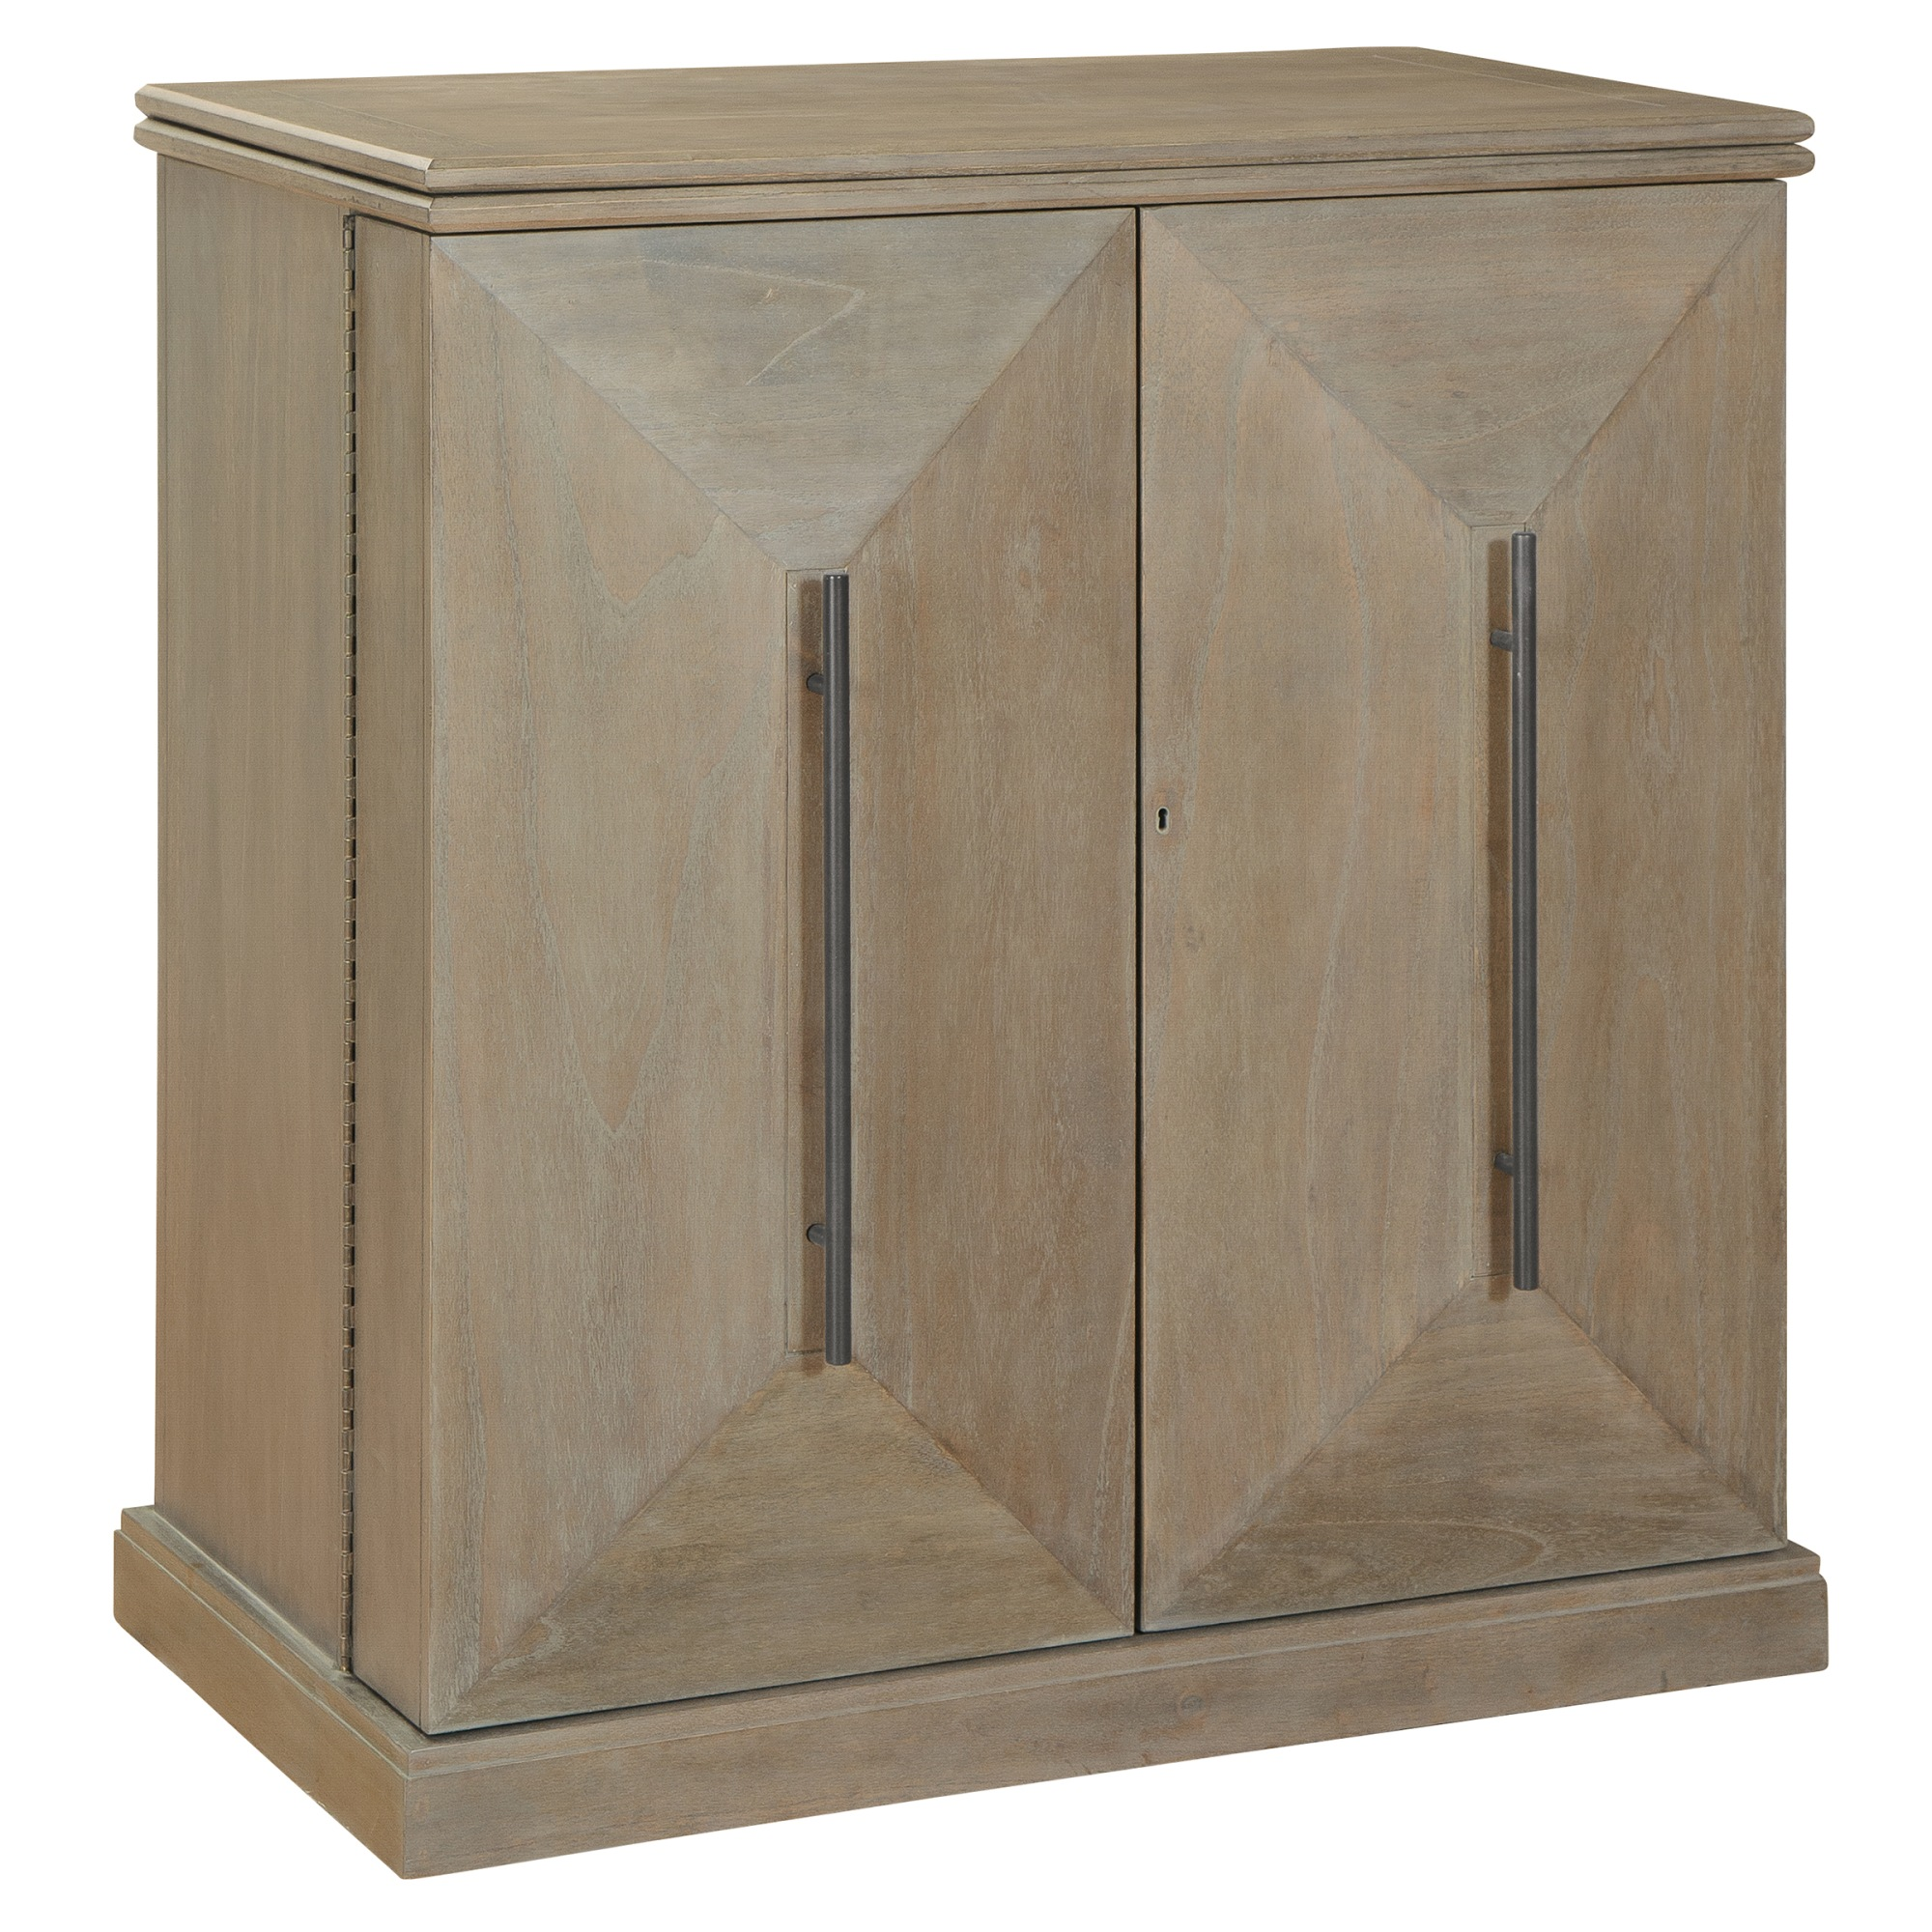 Image for 695-246 Pandora Wine & Bar Console from Howard Miller Official Website